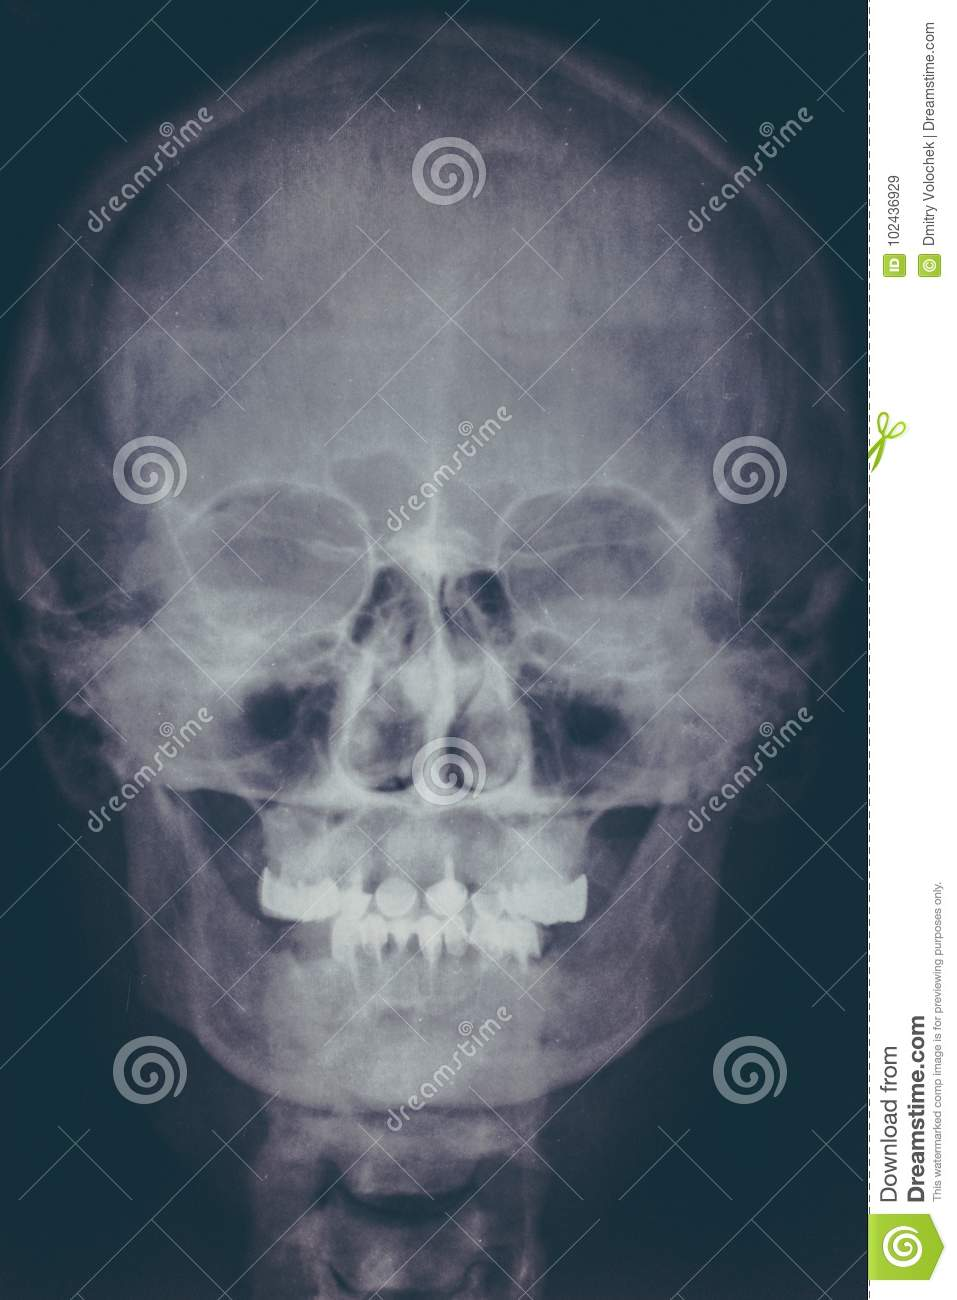 X-ray Image Or Roentgen Of Human Skull, Close-up. Head Xray Scan Of ...